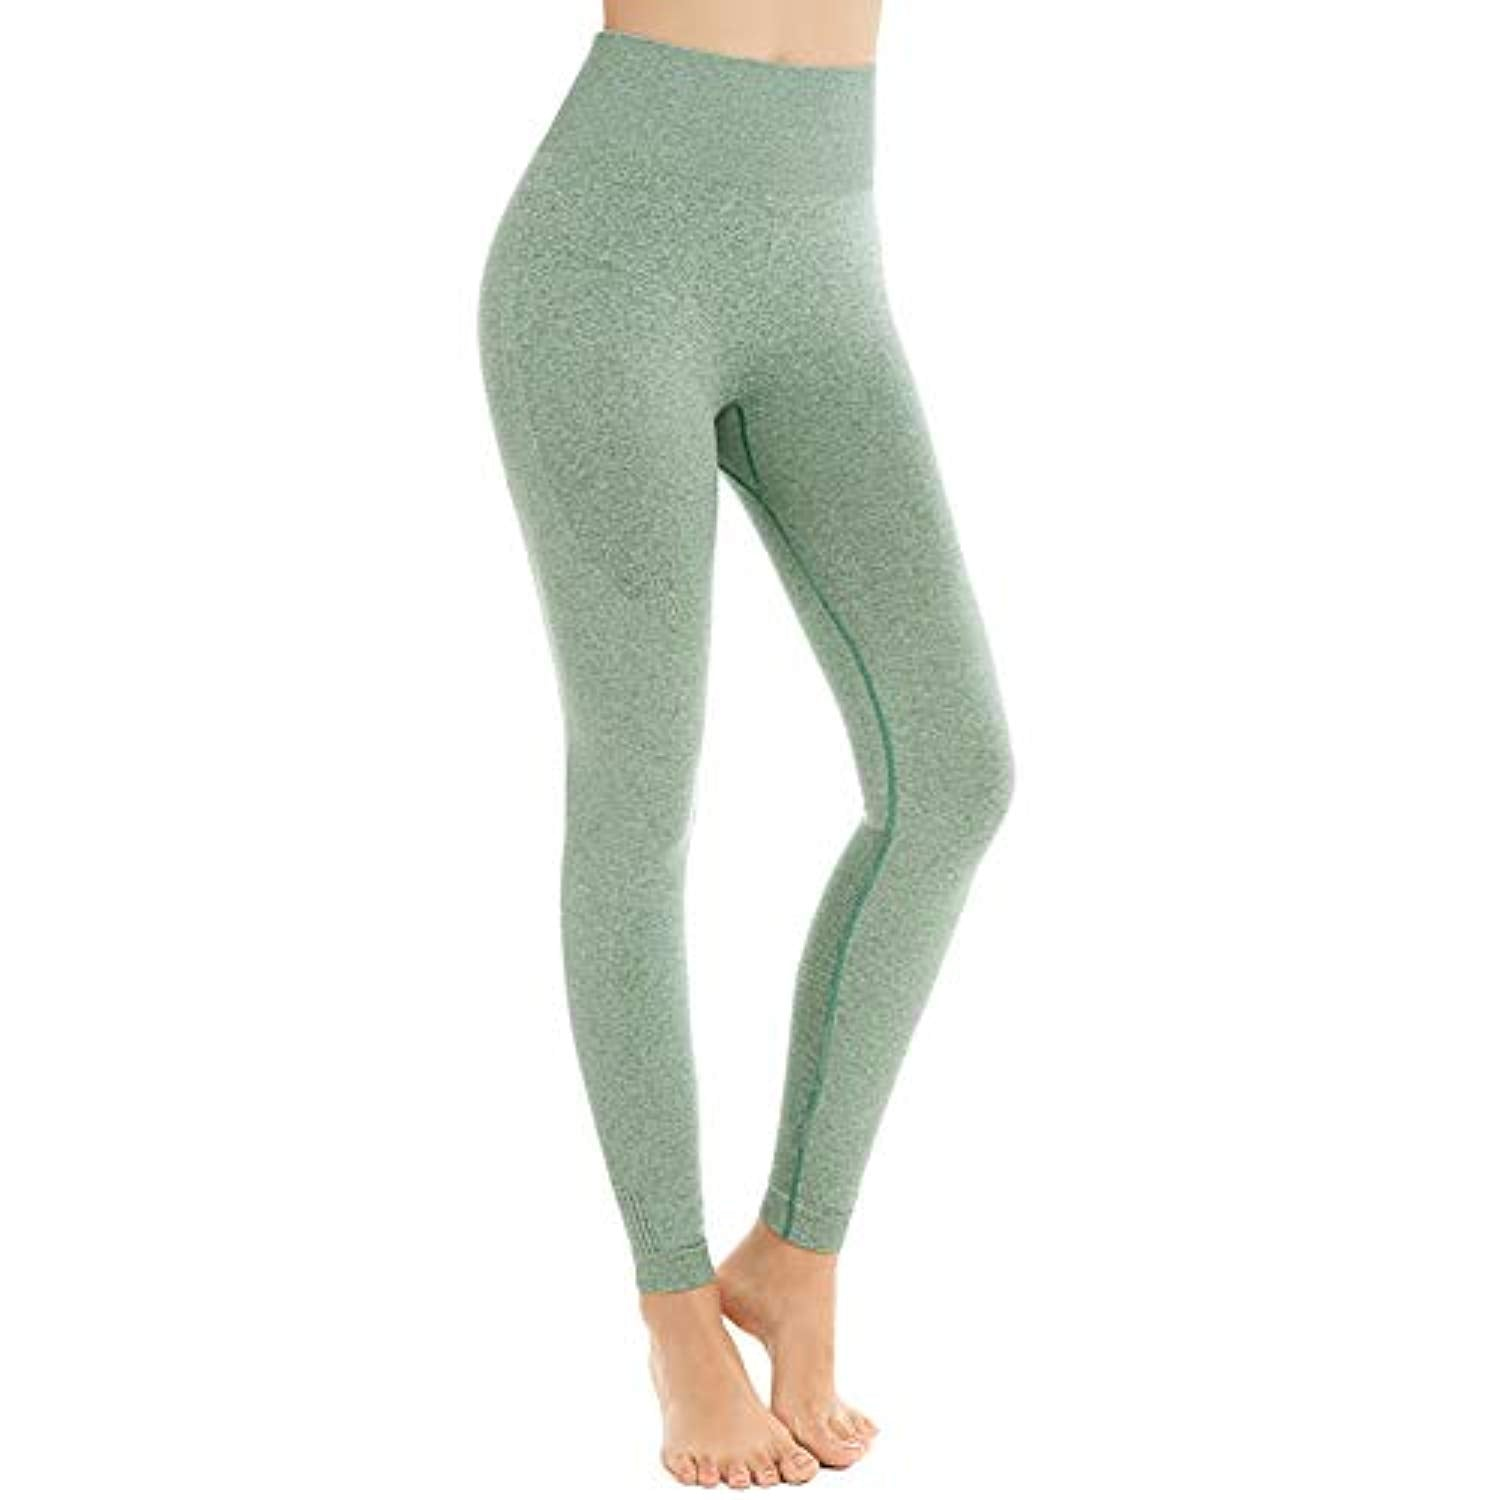 Aoxjox Womens Leggings High Waisted Gym Tummy Control Contour Seamless Workout Leggings